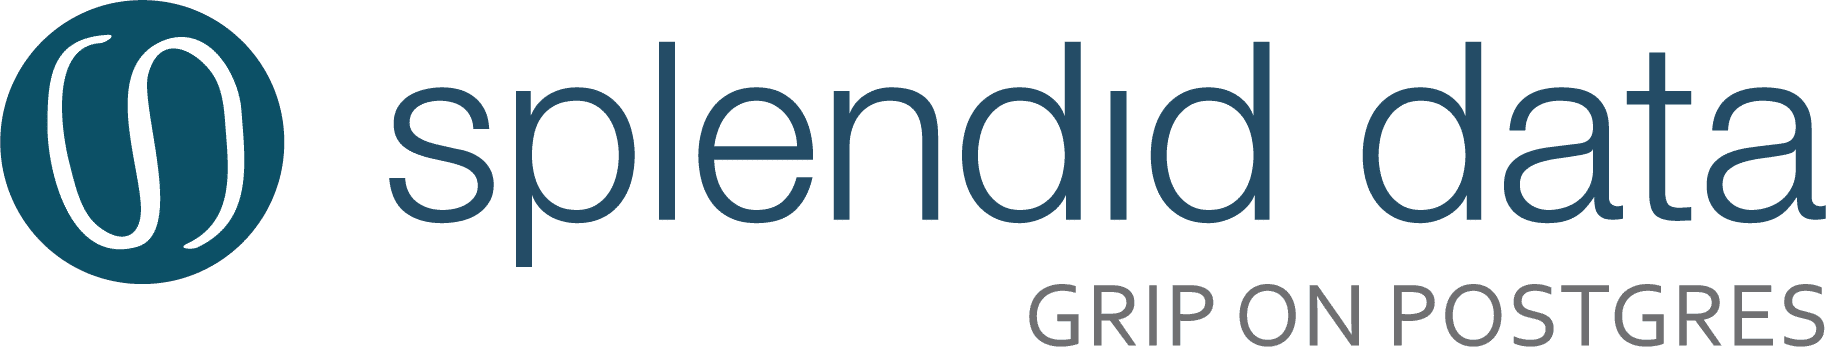 Splendid_data_Logo_2015_RGB_300dpi-1